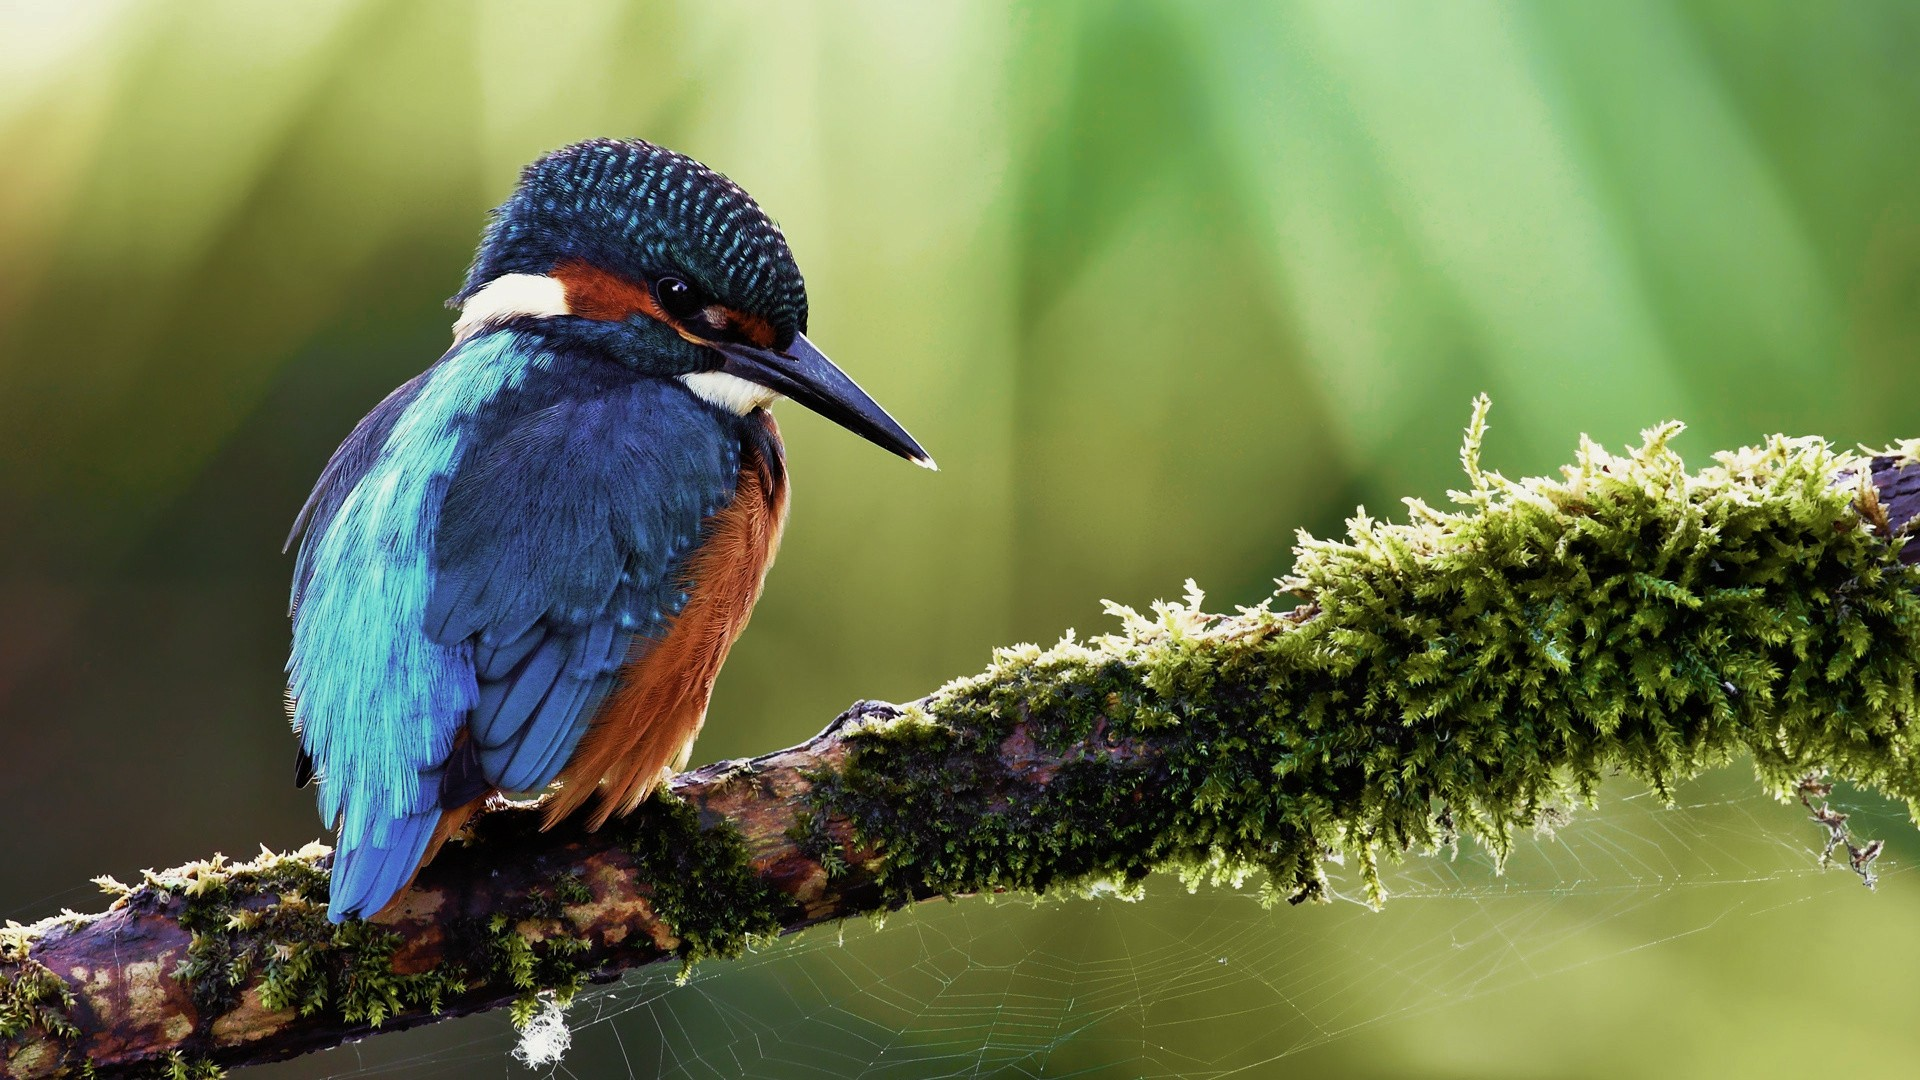 Amazing Kingfisher Wallpaper